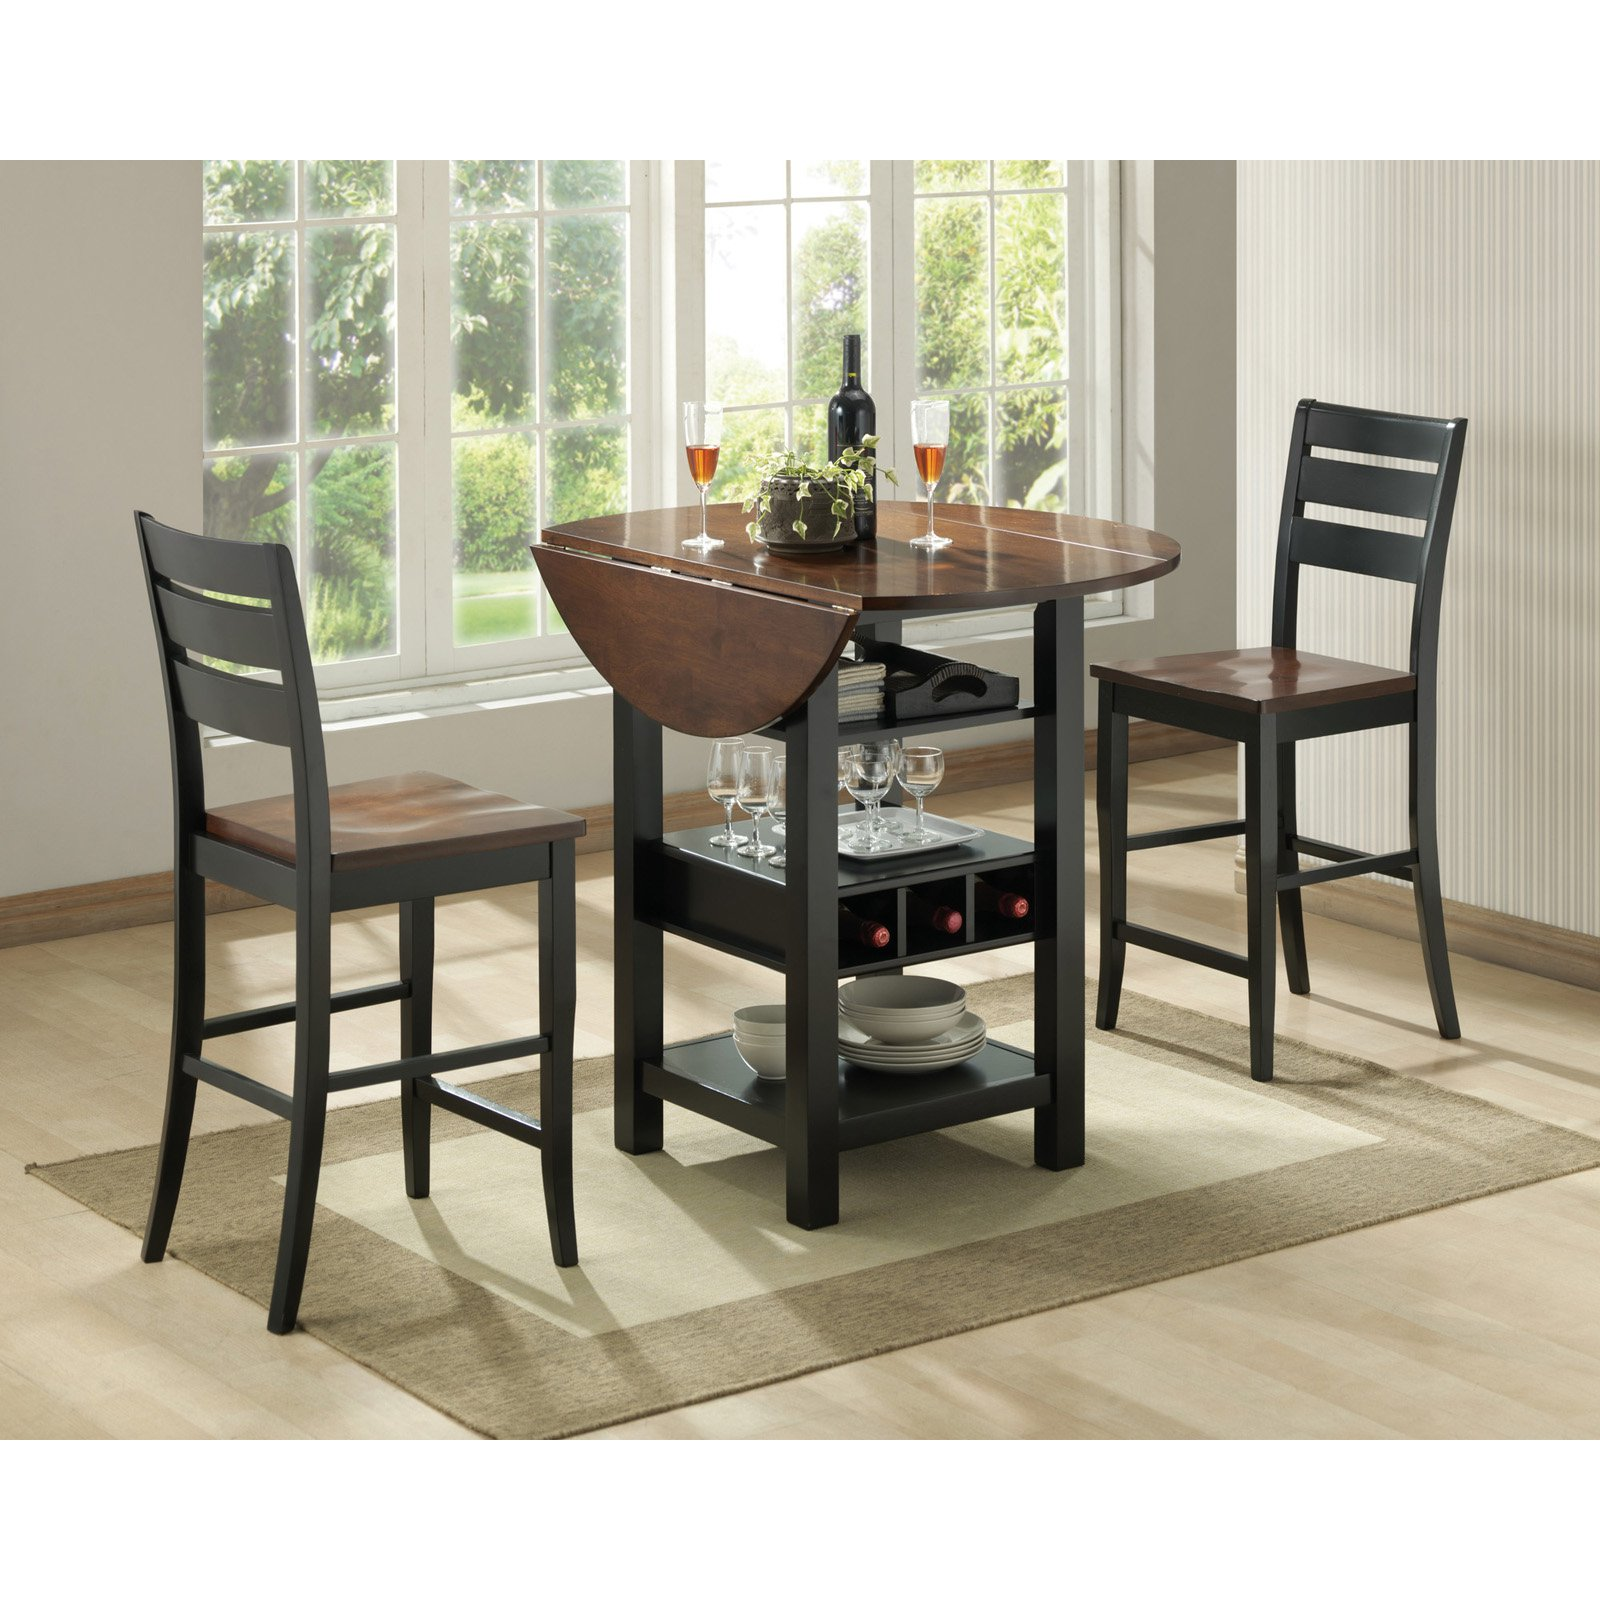 Sunset Trading Quincy 3 Piece Black U0026amp; Cherry Pub Table Set